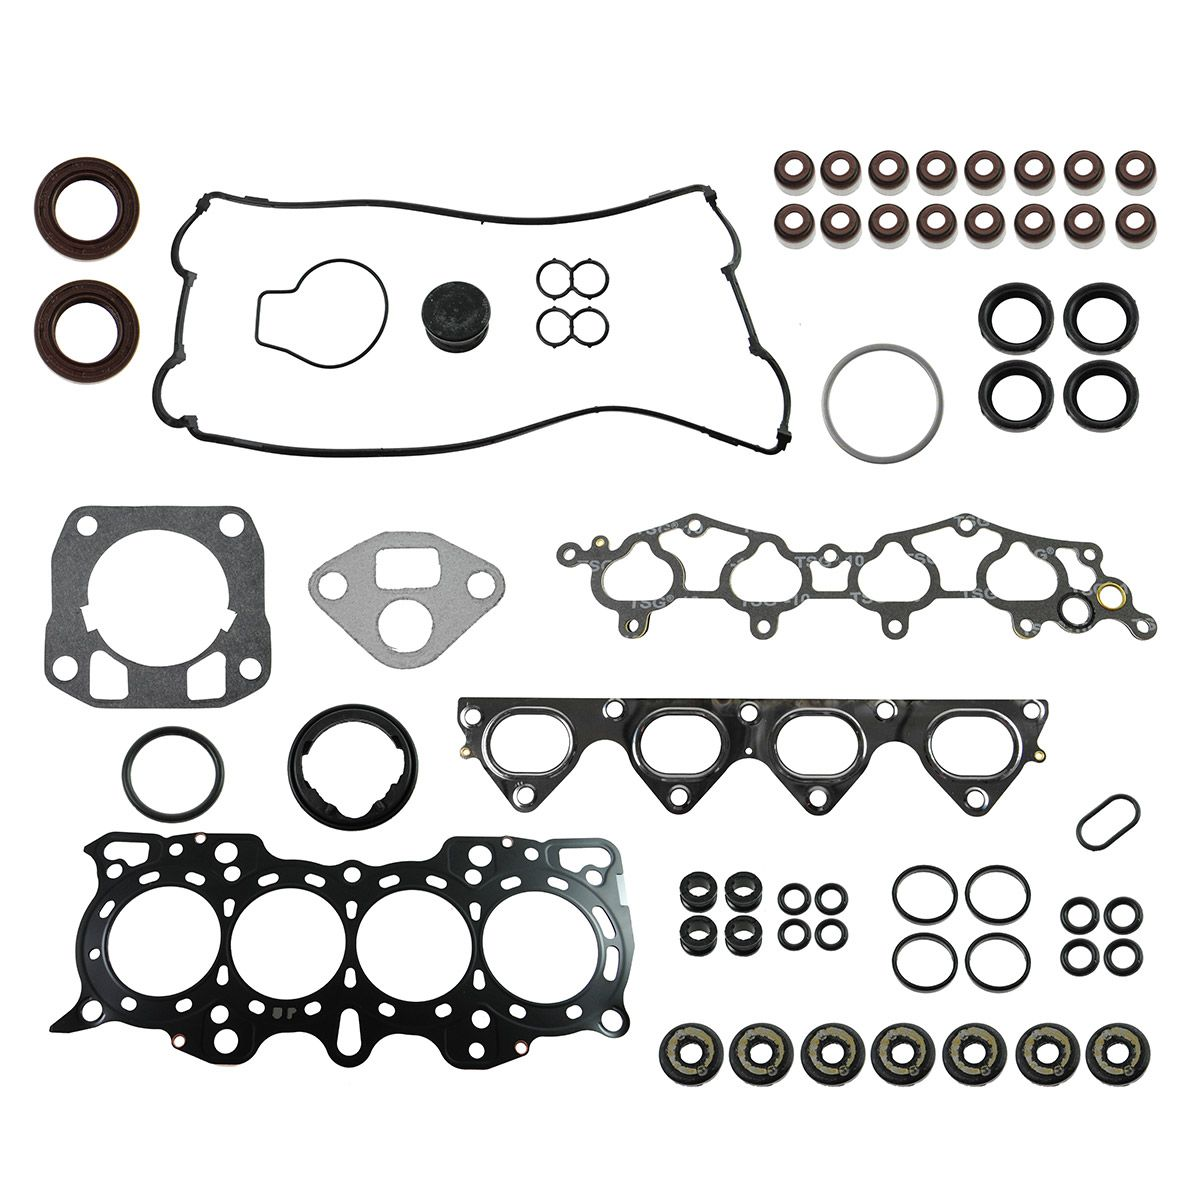 Steel Head Gasket Set Kit For 90-01 Acura Integra 1.8L